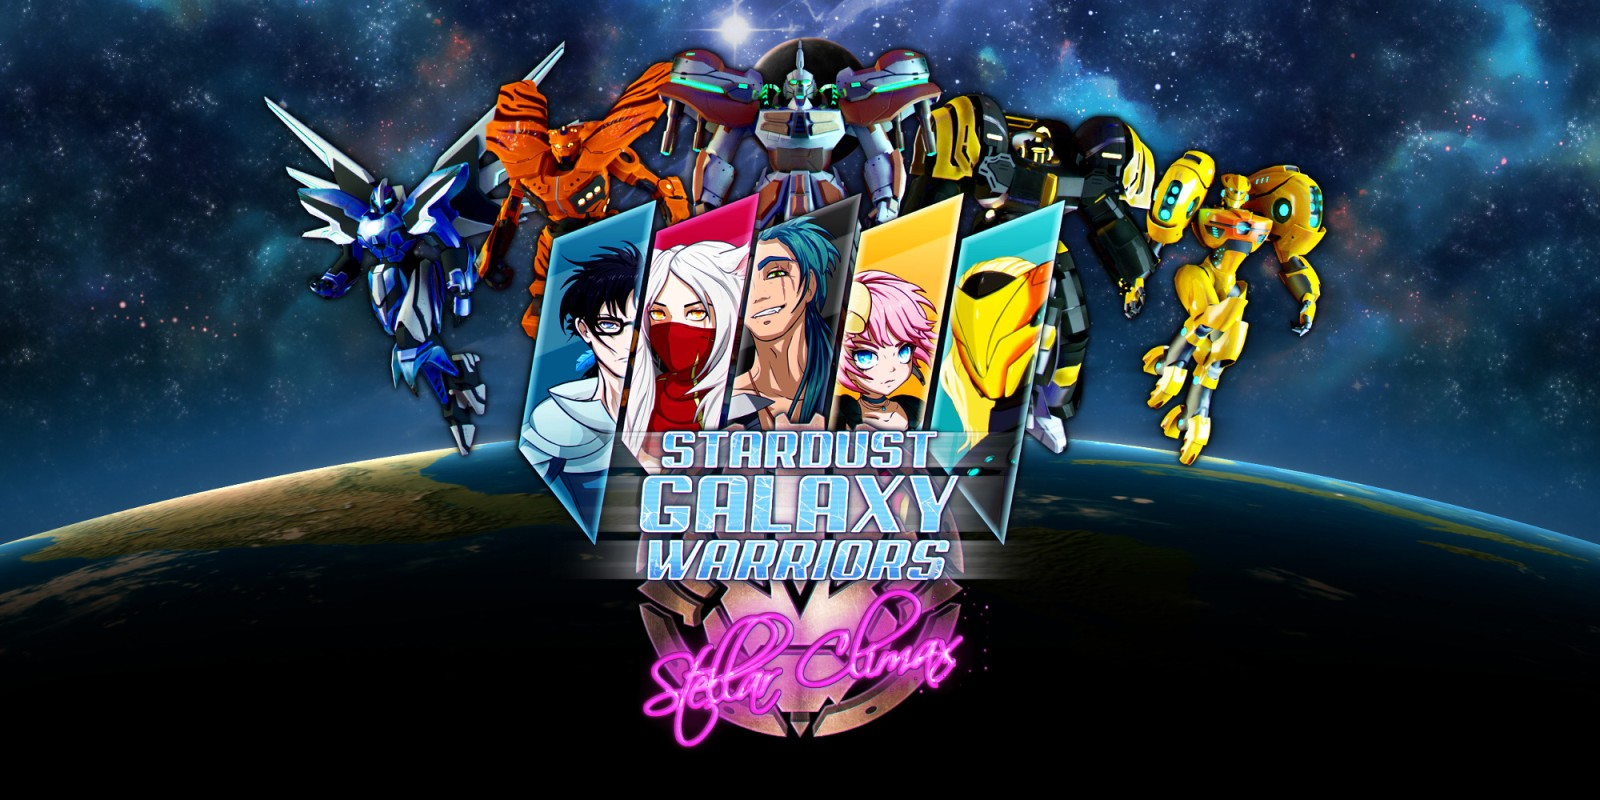 Review - Stardust Galaxy Warriors: Stellar Climax (Switch)